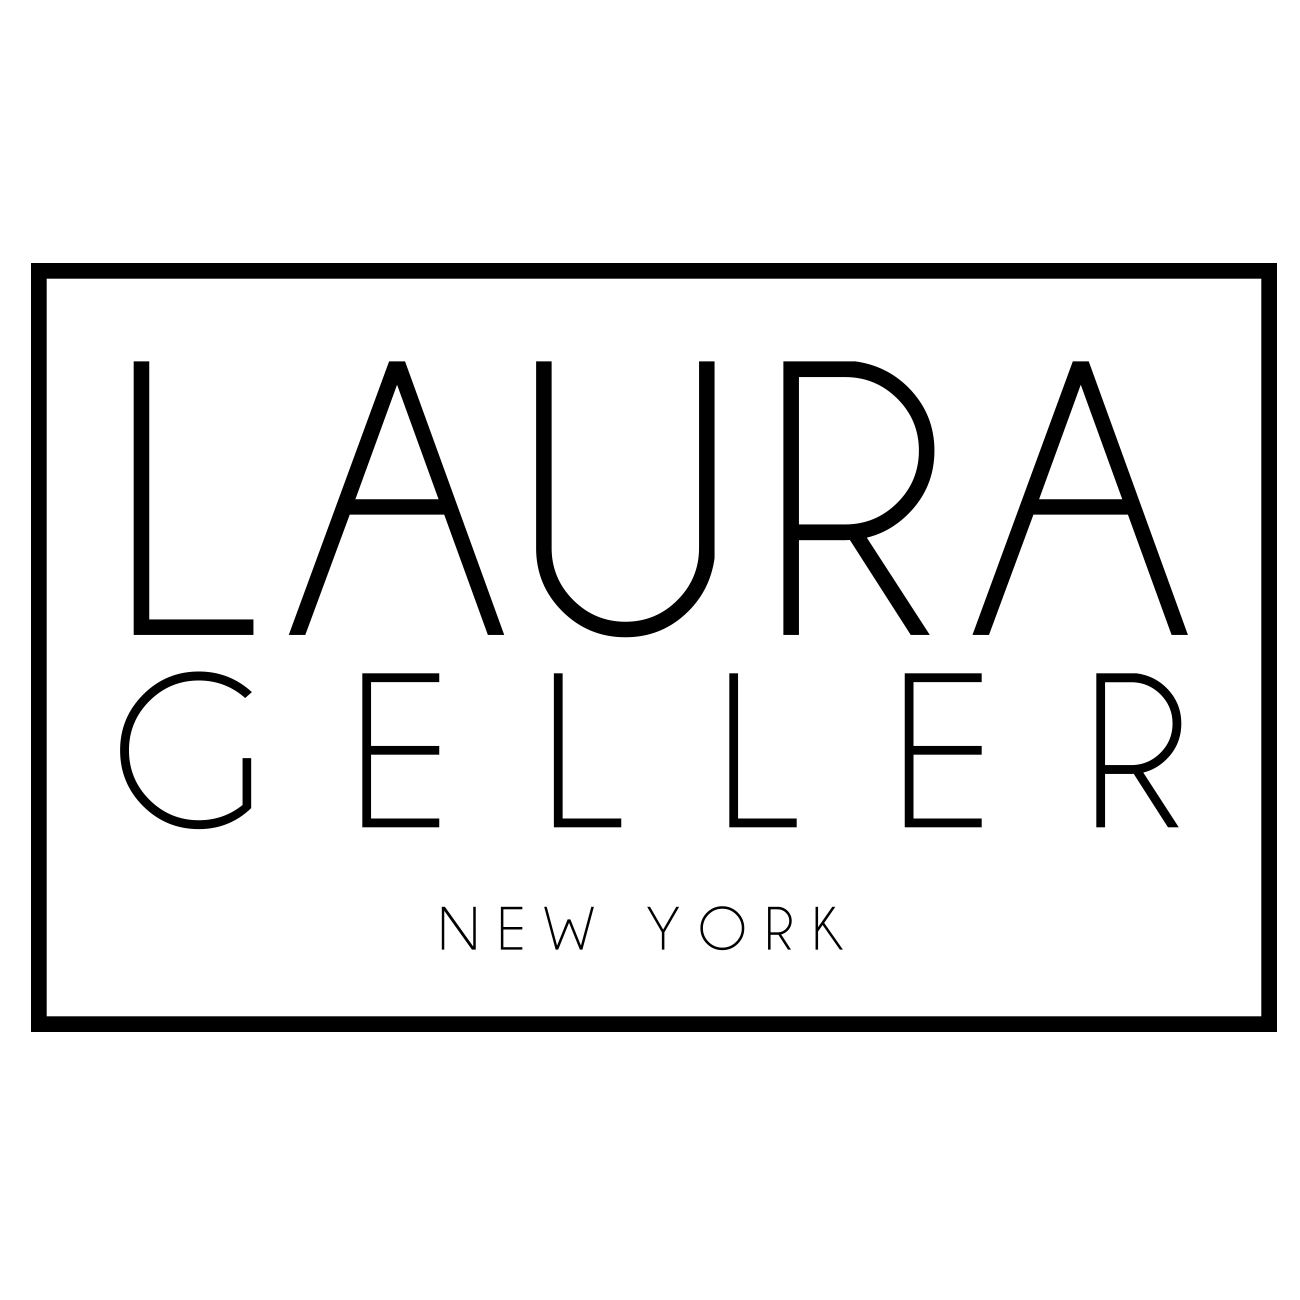 Laura Geller New York